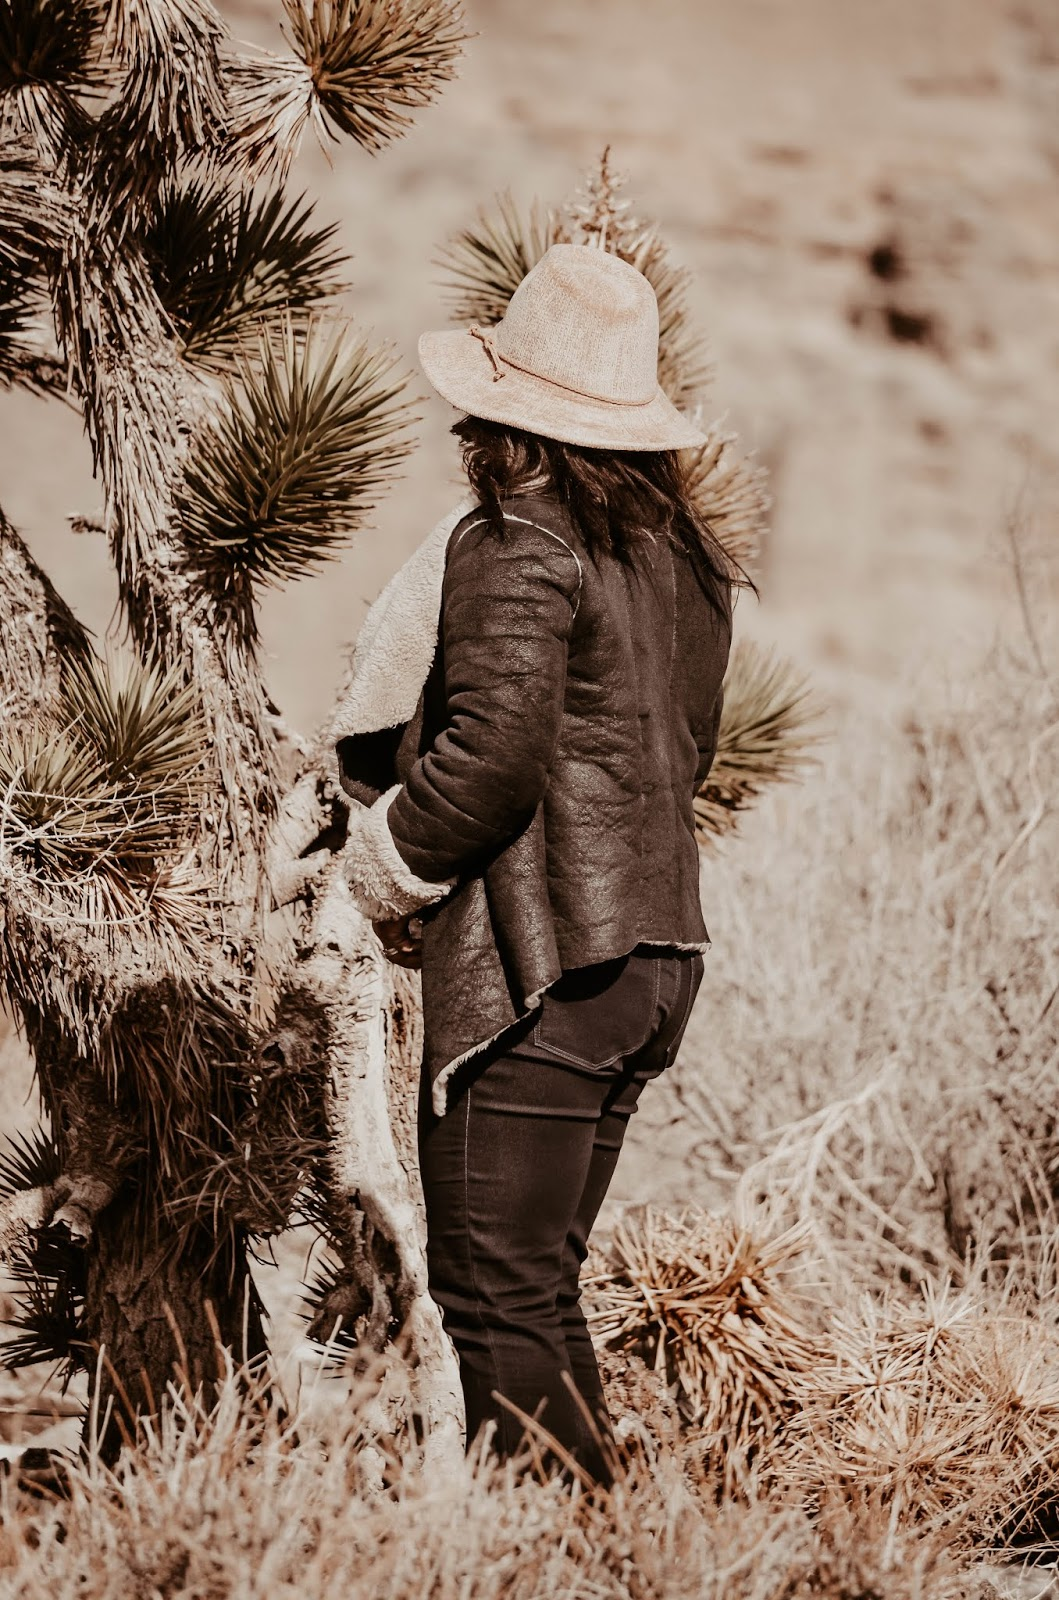 cowgirl-inthedesert-paige-denim-bootleg-jeans-pants-anthropologie-blush-plush-chenille-hat-guess-double-ring-belt-vintage-cateye-sunglasses-at-snowy-mount-charleston-lasvegas-nv